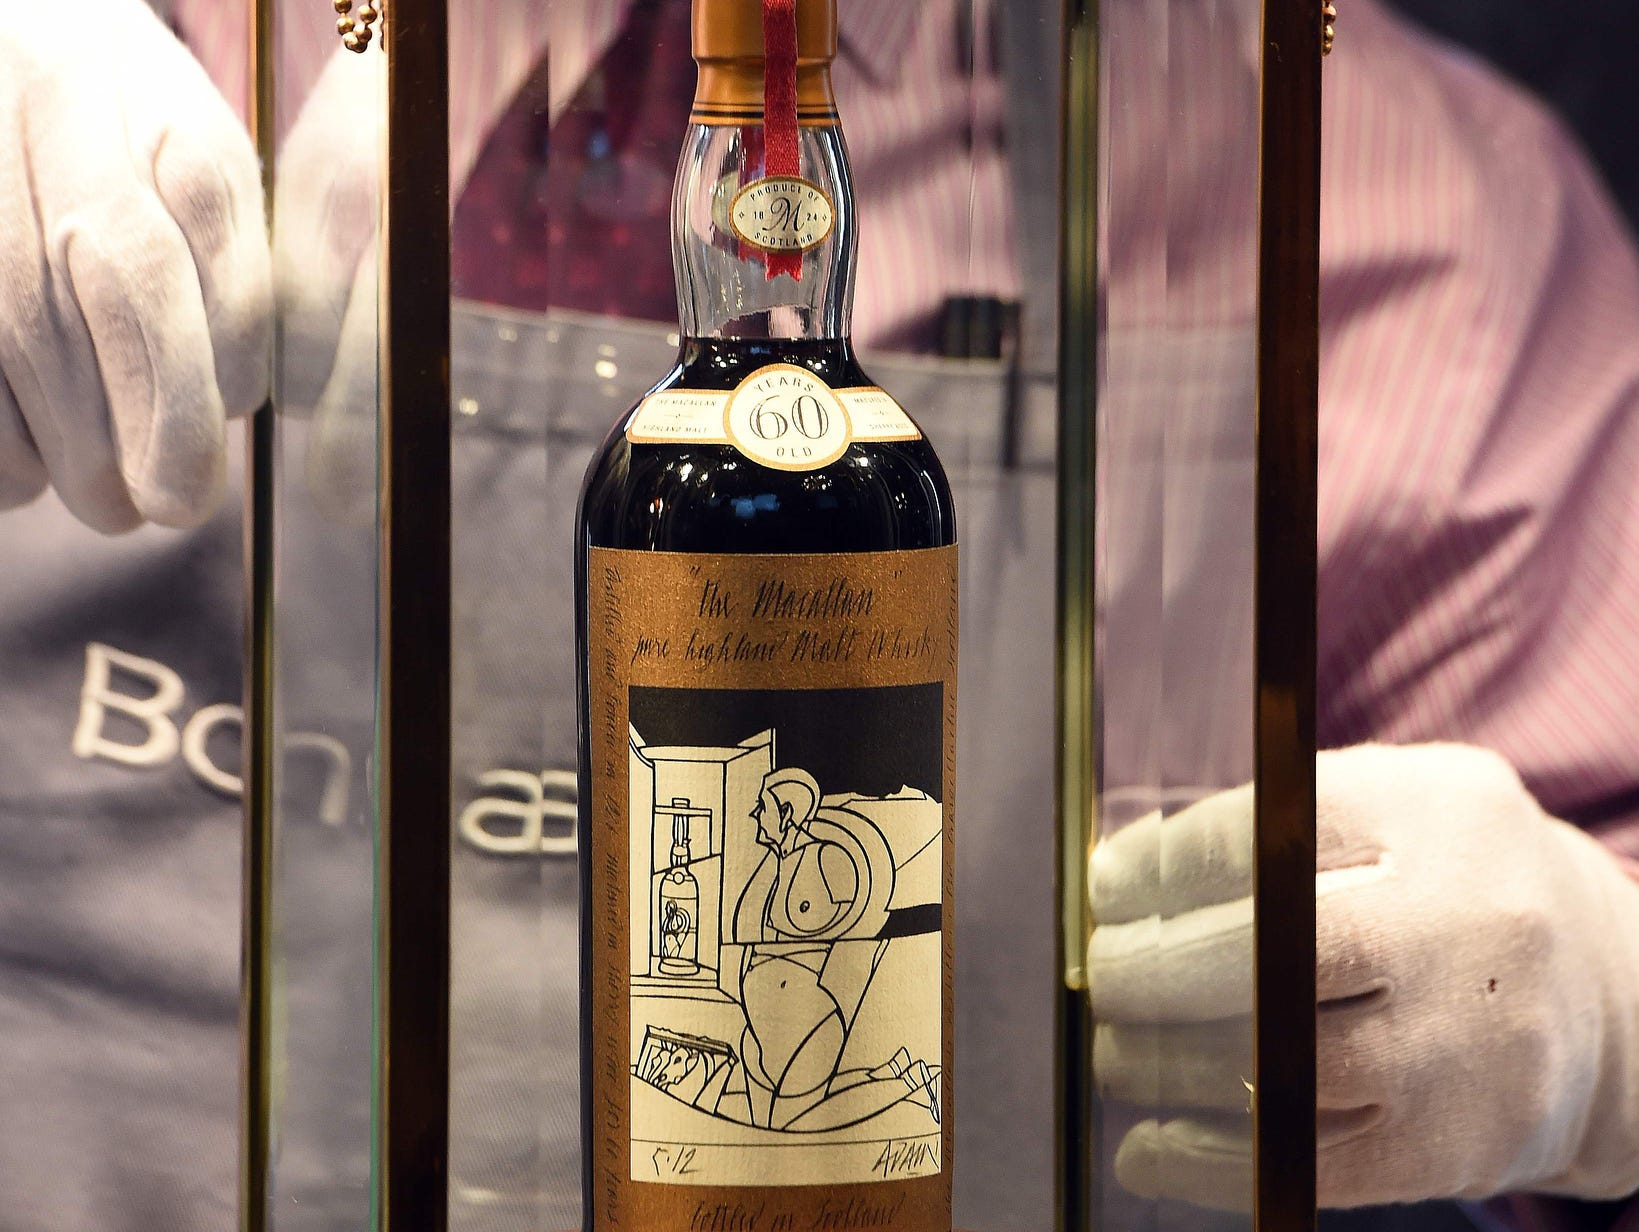 A Bonhams porter shows the bottle of Macallan Valerio Adamai 1926 whisky which sold for a world record sale price of £700,000 at auction in Edinburgh on Oct. 3, 2018. - The whisky, which was in a vat for 60 years from 1926 then bottled, fetched £700,000 plus a £148,000 sales premium to make it the most expensive whisky for £848,000 or $1,104,403.82 USD.